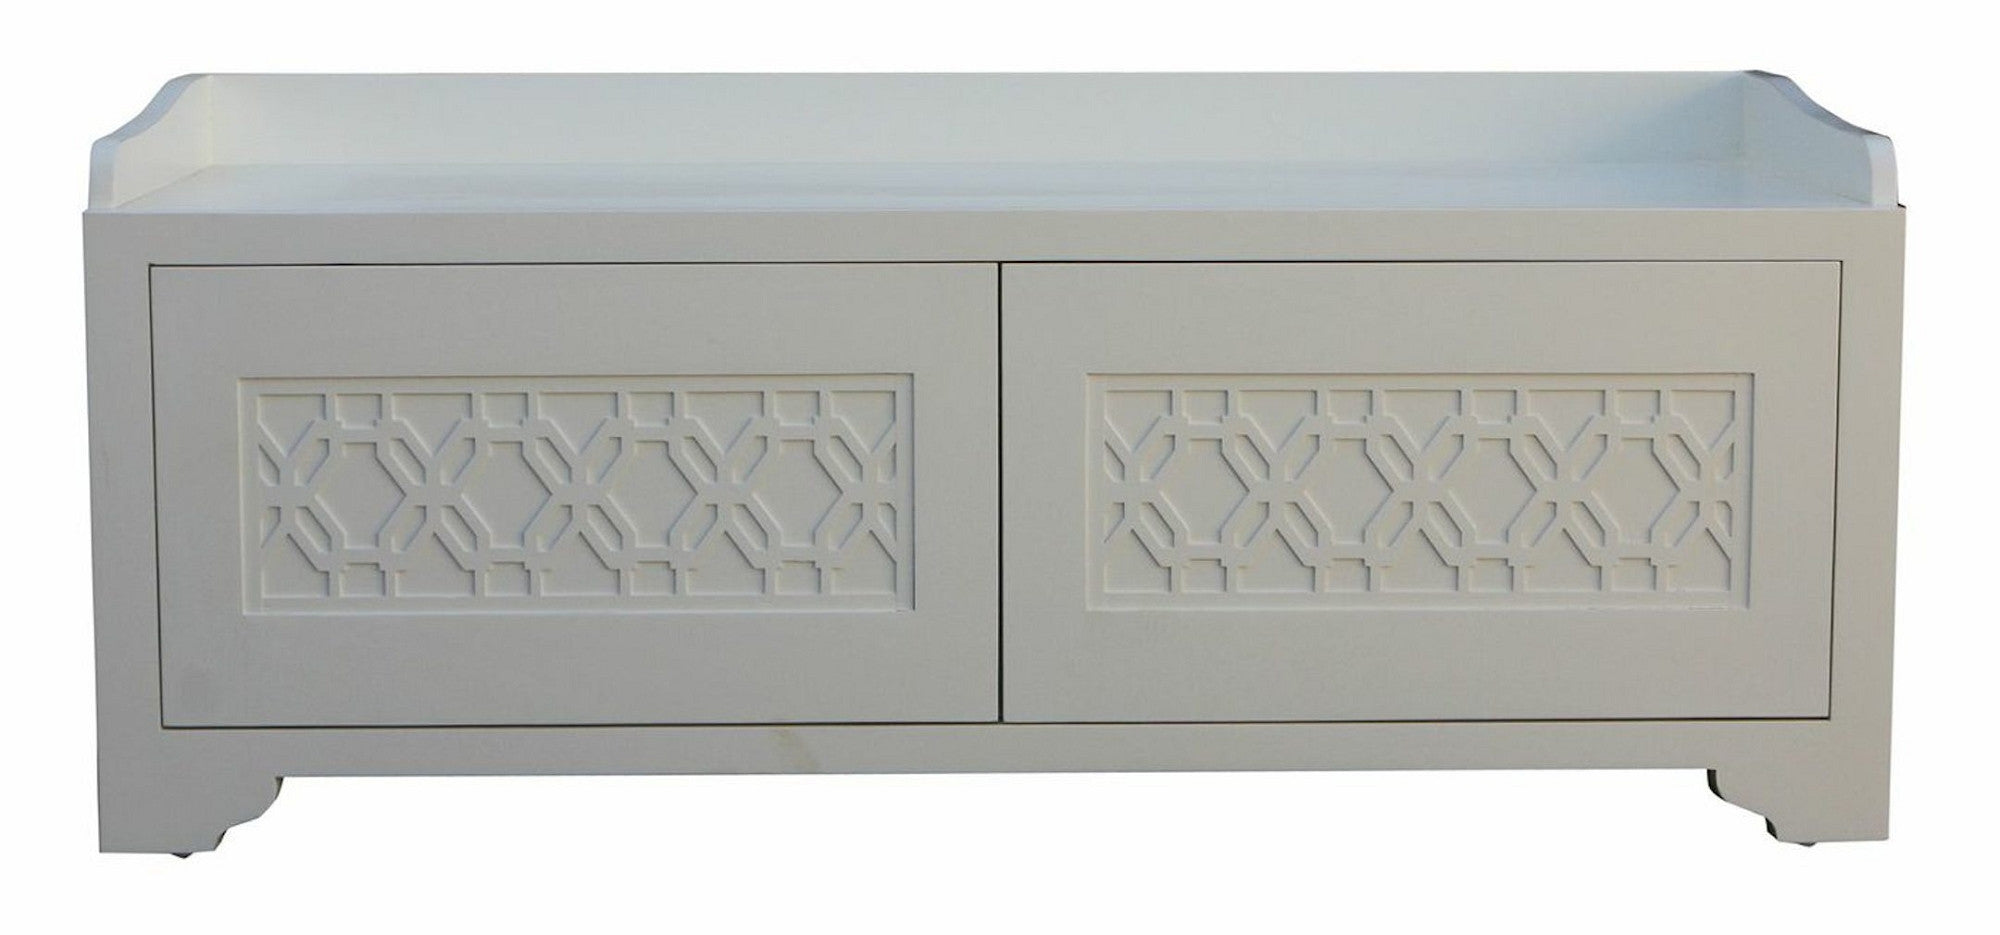 Custom Bedroom Storage Bench with Geometric Lattice Tracery